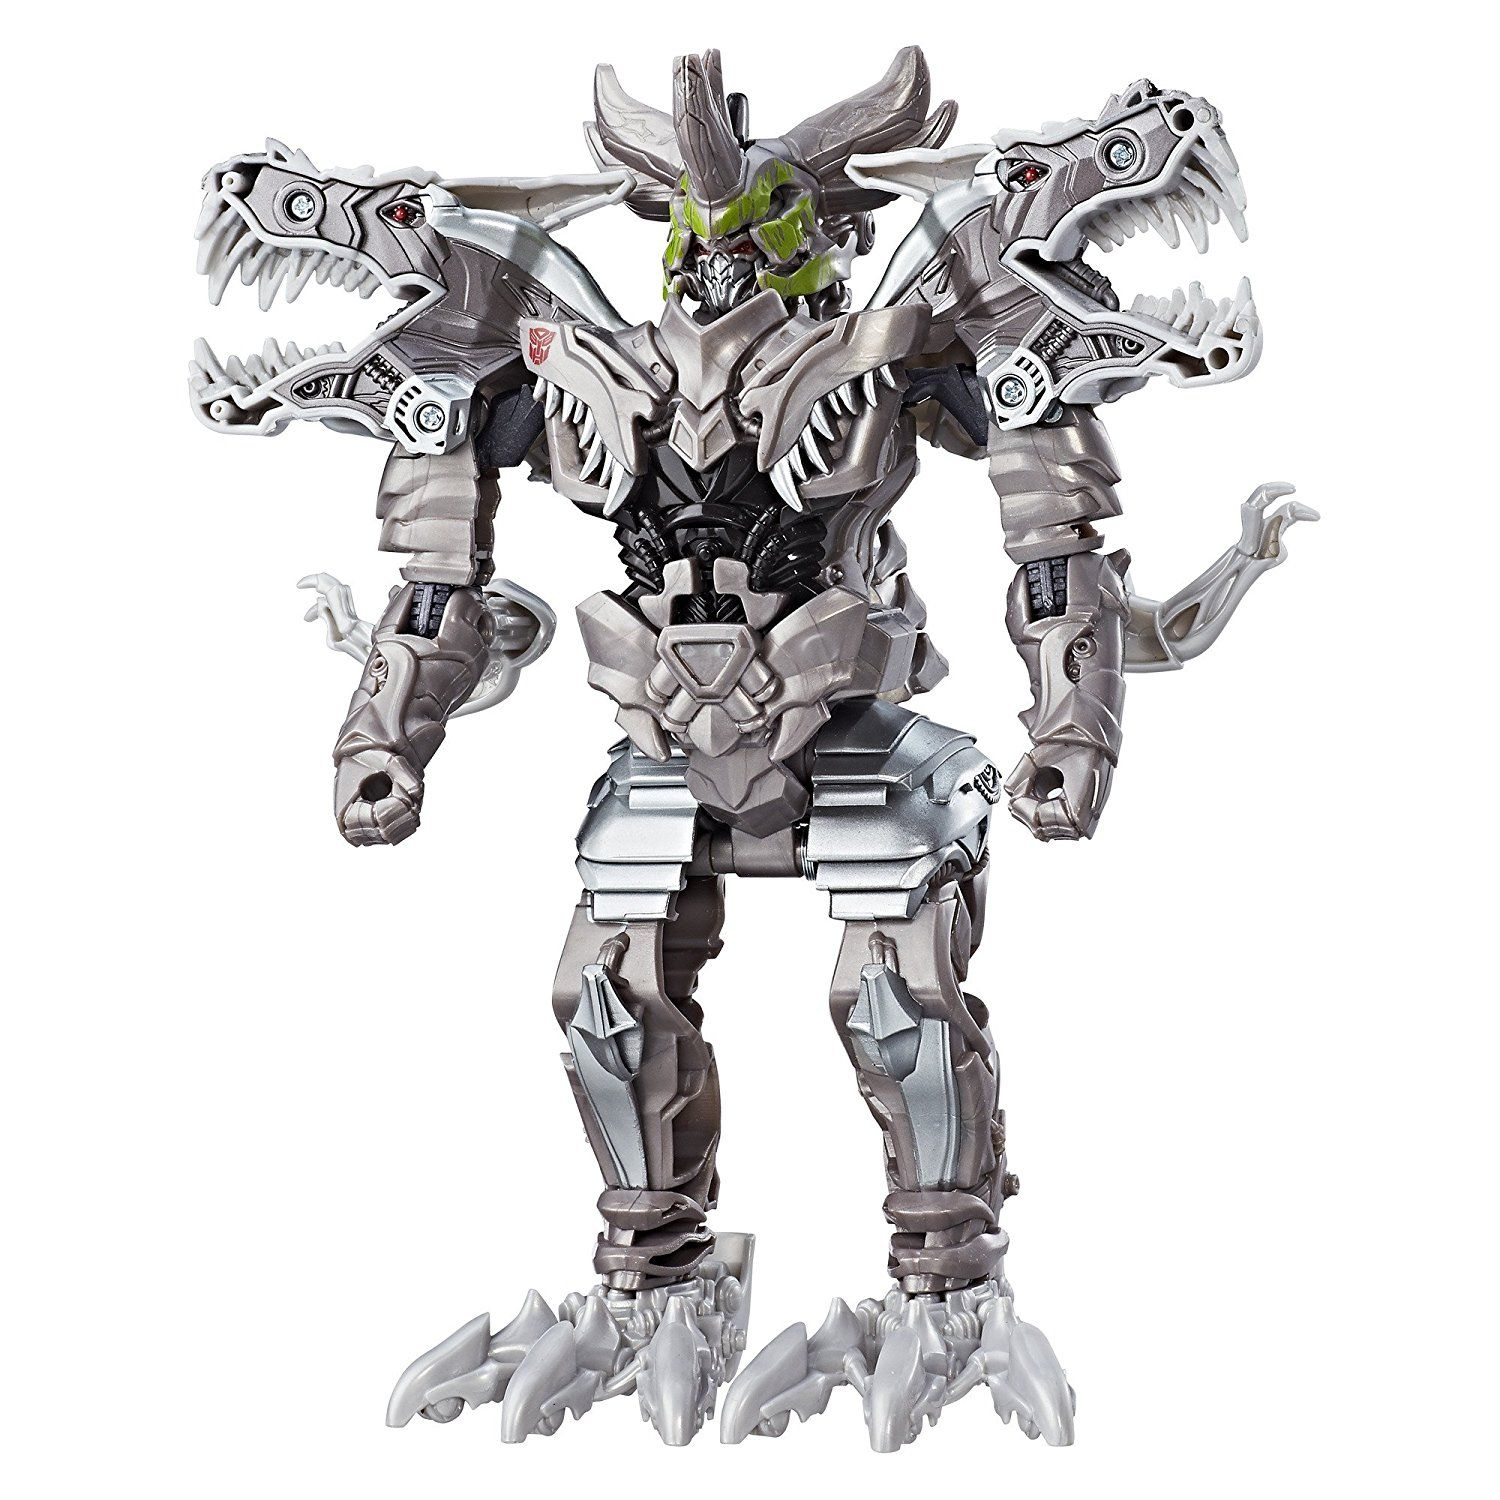 Skyhammer Autobots Action Figures Robot For Transformers:The Last Knigh